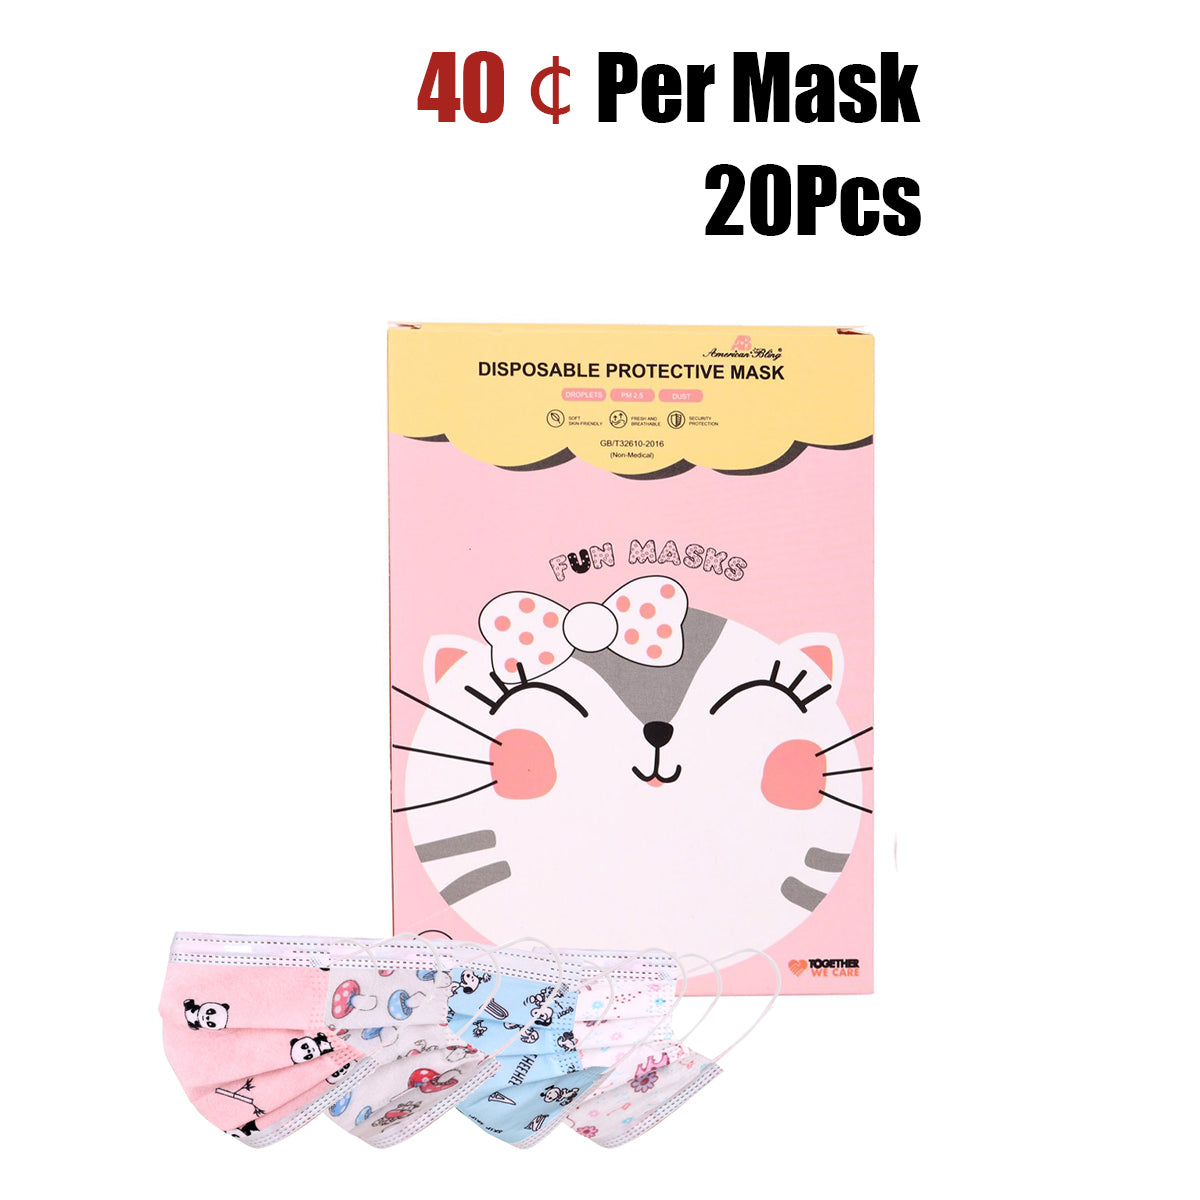 20Pcs American Bling Kids 3 Ply Disposable Assorted Cartoon Print Face Mask  (20Pcs/Box)